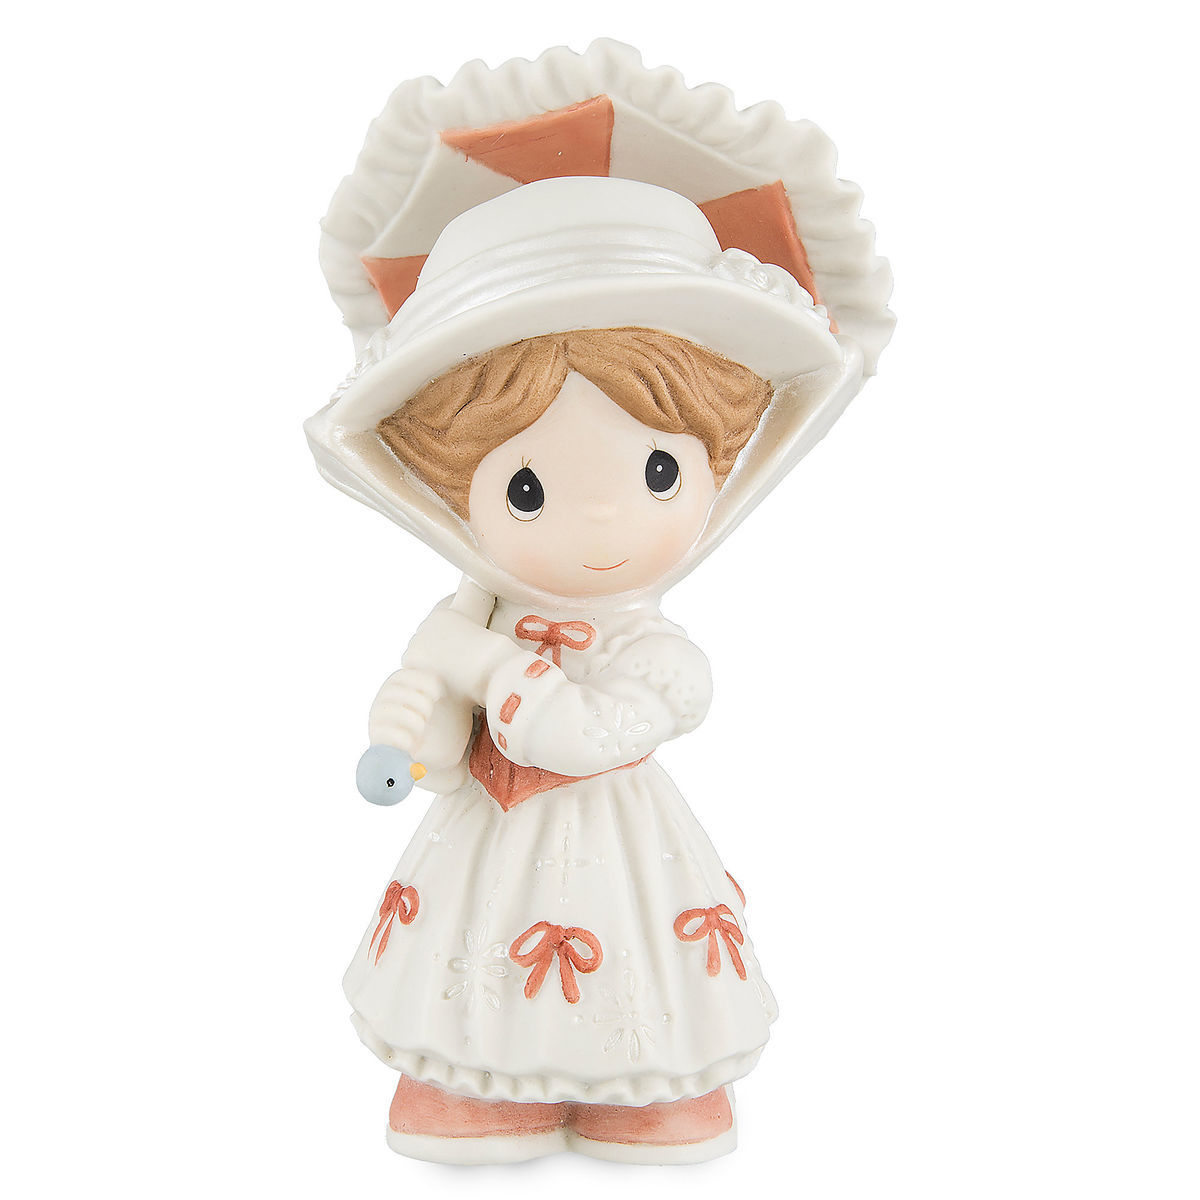 Product Image Of Mary Poppins Figure By Precious Moments 1